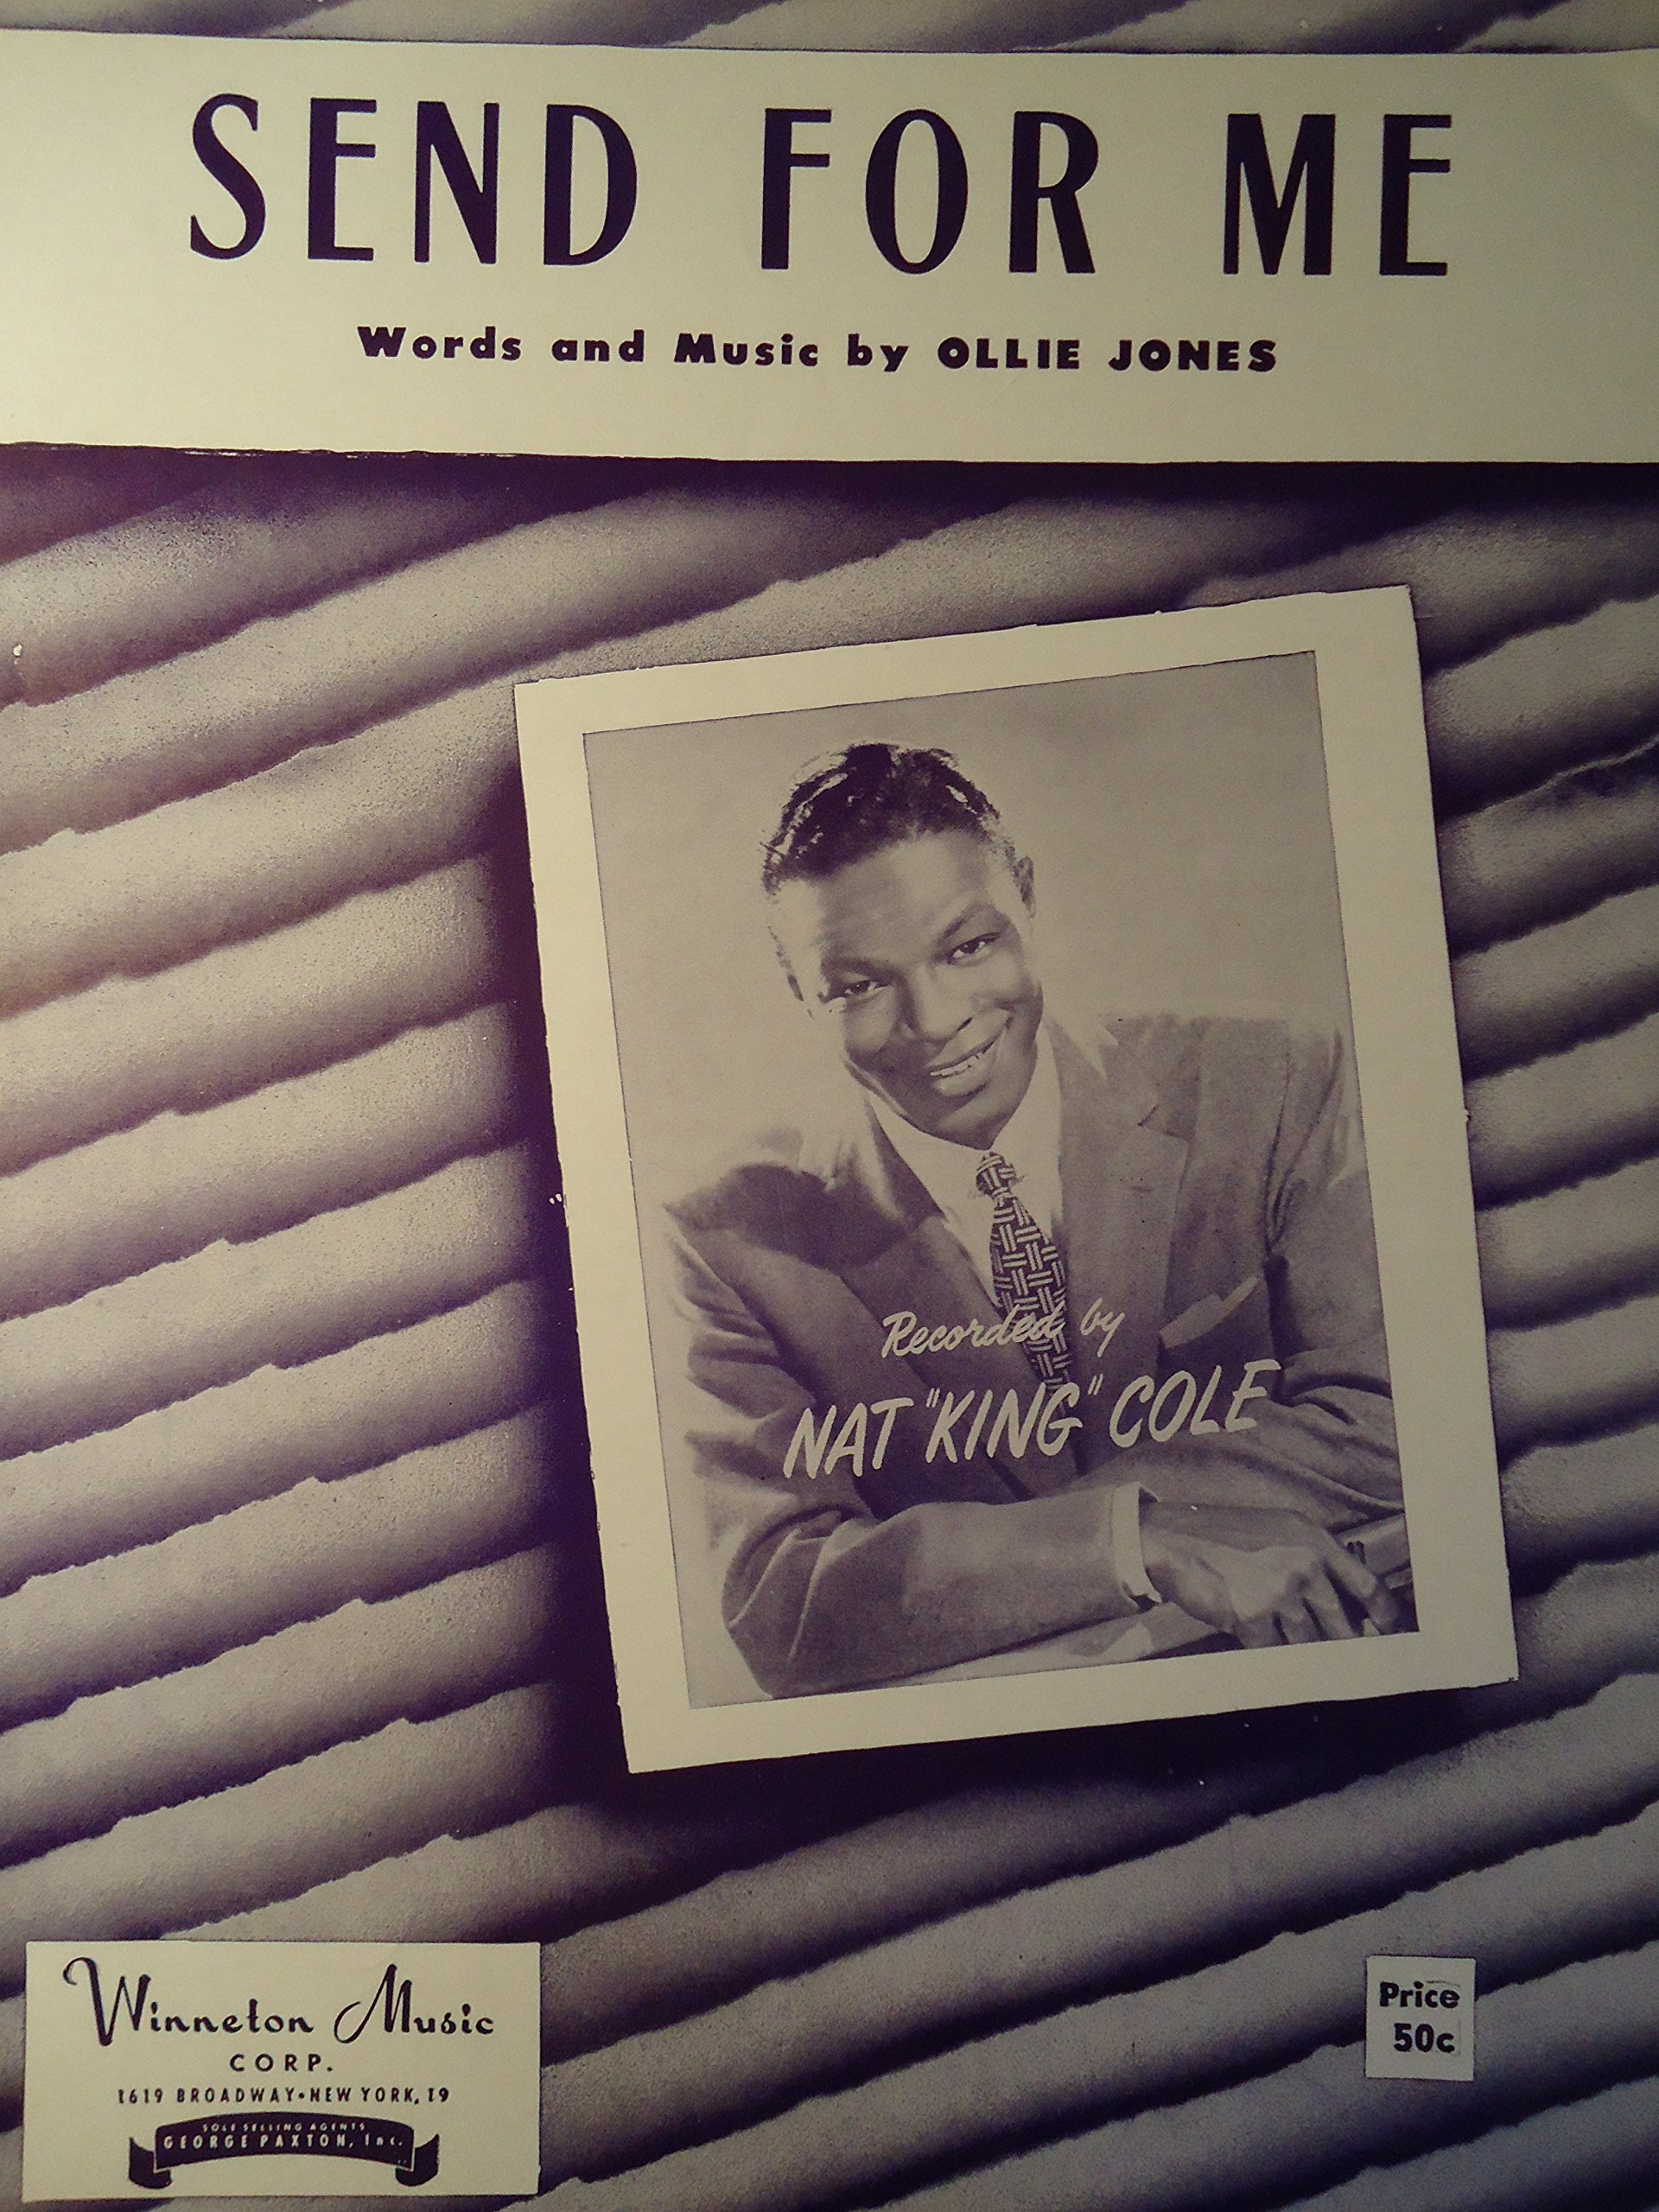 Send for Me (Nat King Cole on Cover): Nat King Cole, Words and music by  Ollie Jones: Amazon.com: Books